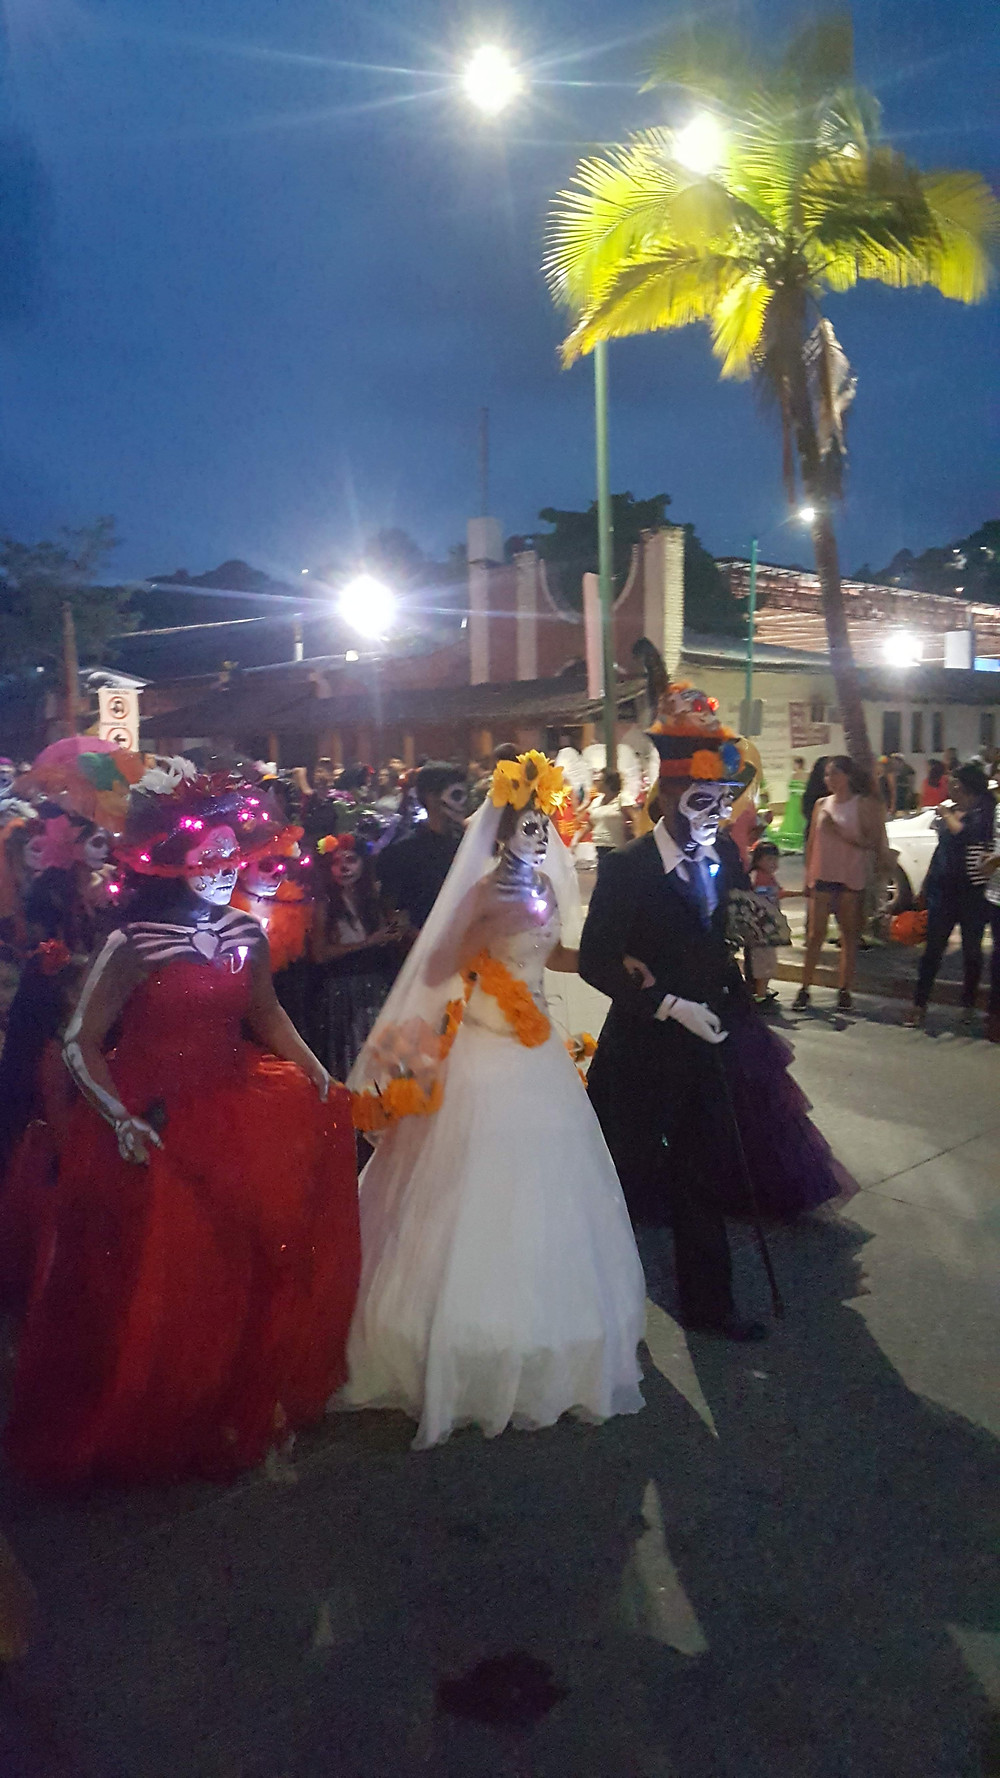 This is a picture of people dressed up as catrinas in Dia de muertos observances in Zihuatanejo